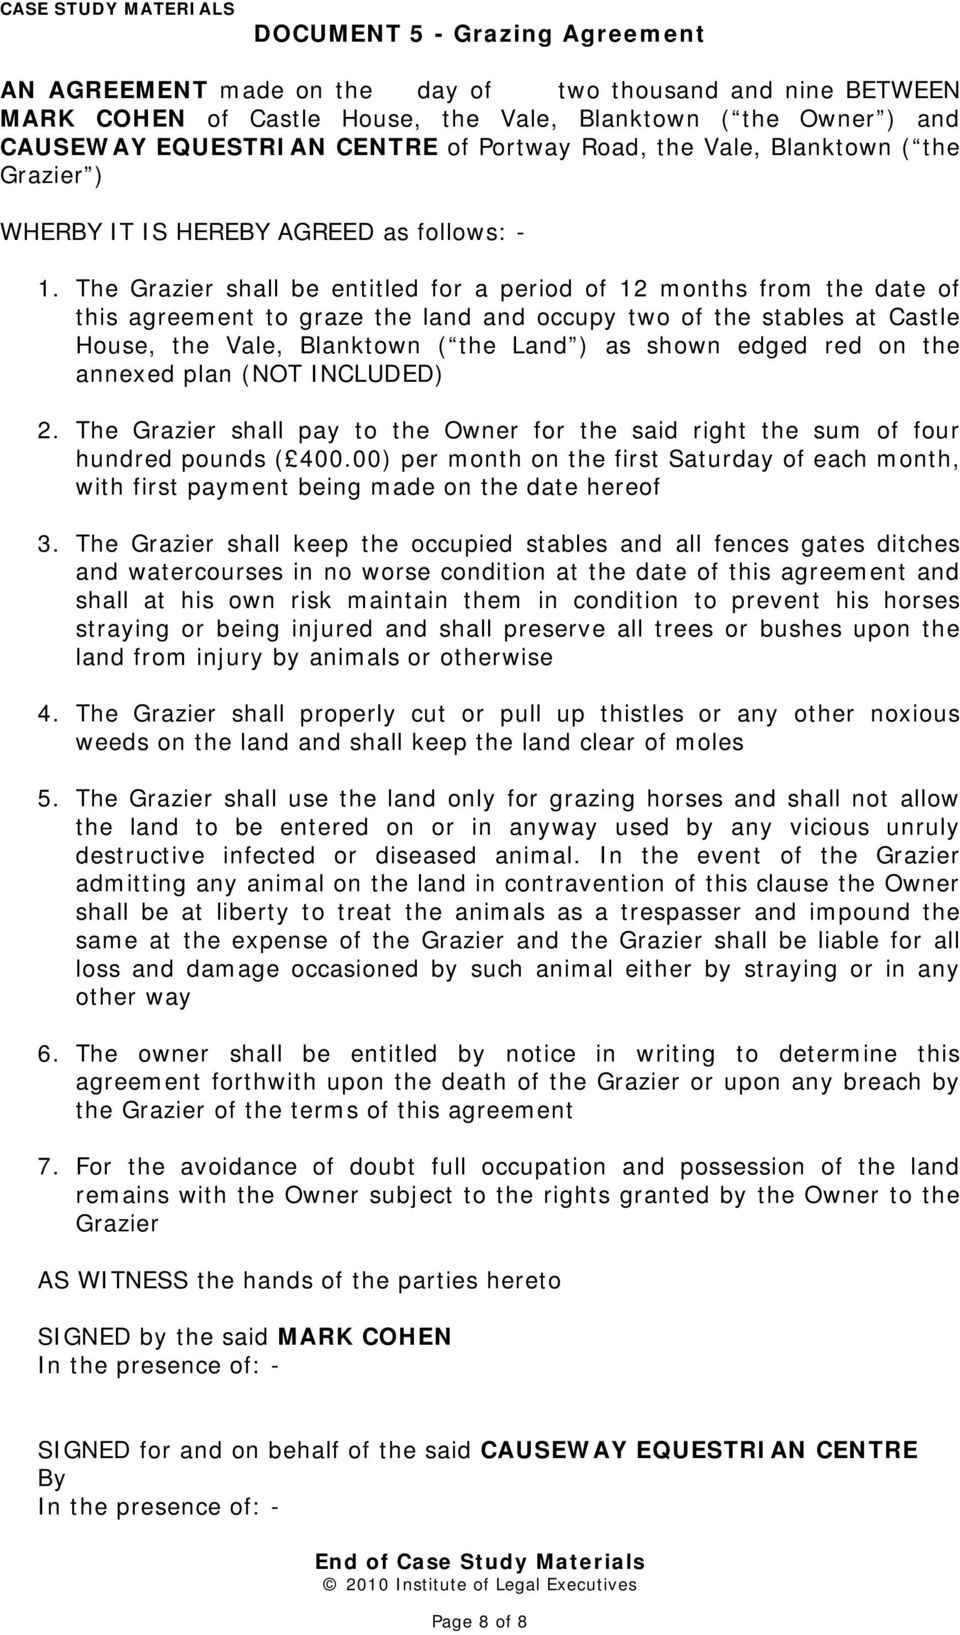 The Grazier shall be entitled for a period of 12 months from the date of this agreement to graze the land and occupy two of the stables at Castle House, the Vale, Blanktown ( the Land ) as shown